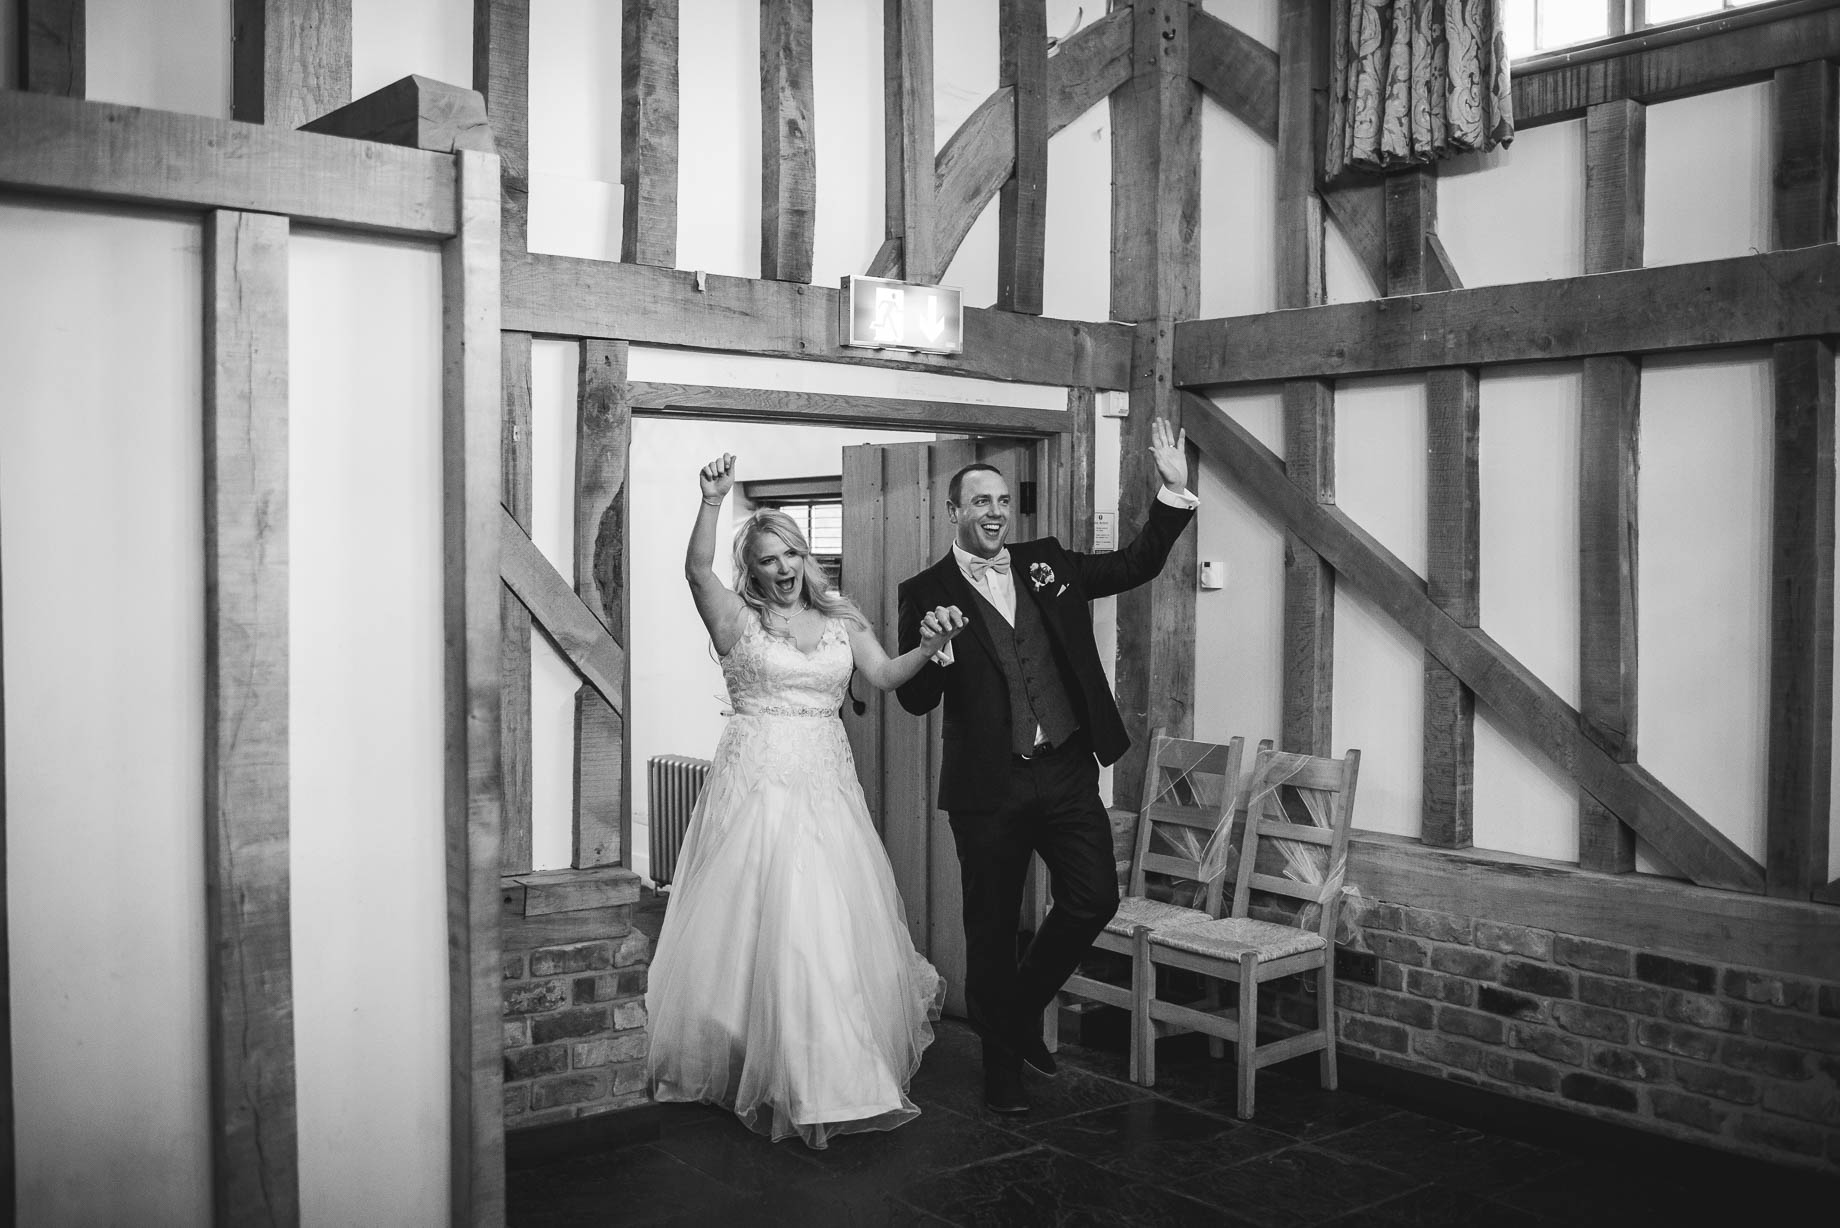 Gate Street Barn wedding photography - Guy Collier Photography - Camilla and Dave